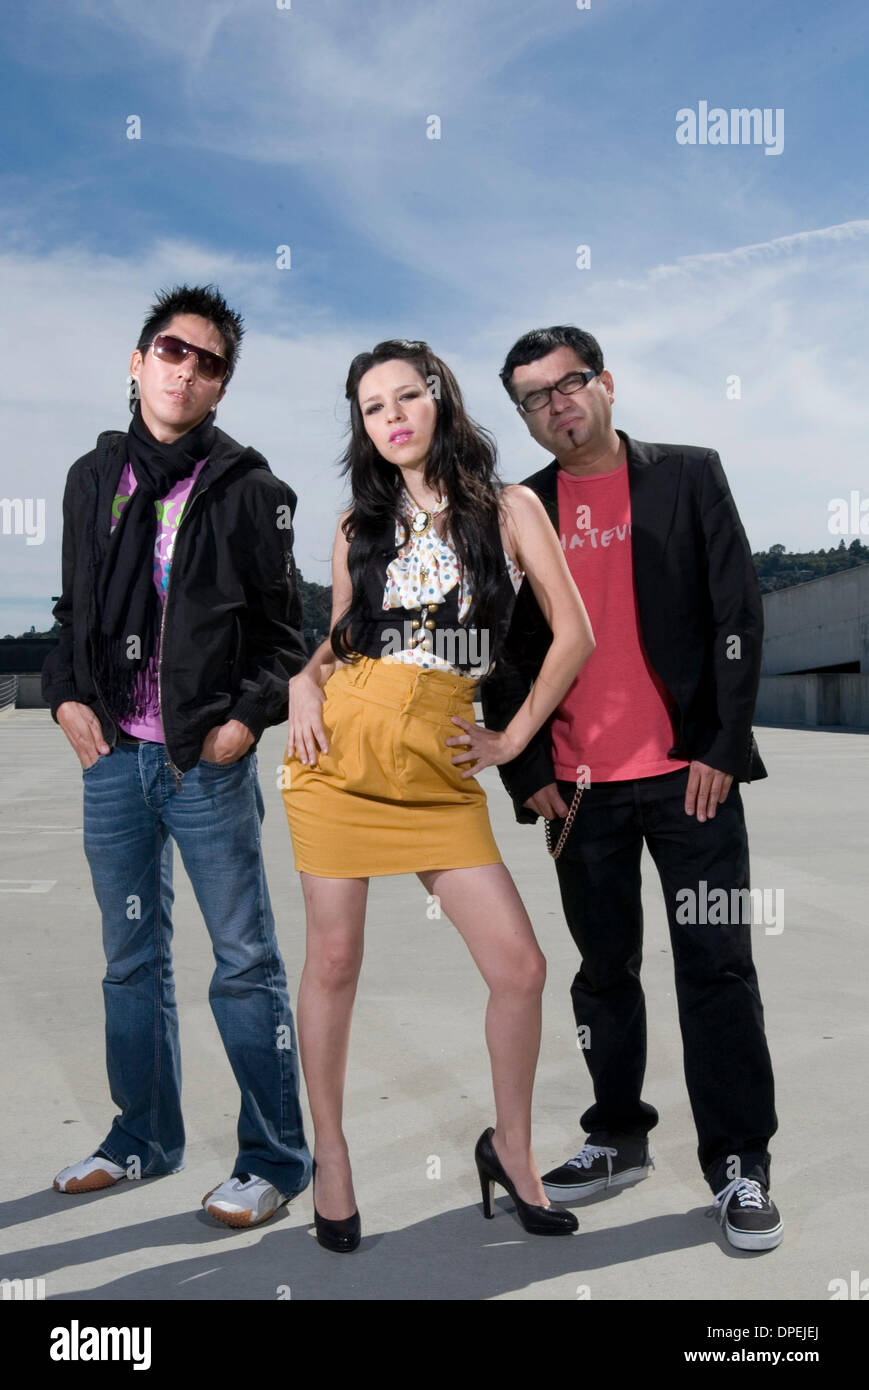 Mar 15, 2006 - Los Angeles, California, USA - Mexican pop-rock band Belanova photographed March 2006. The Latin Grammy-nominated Mexican synth-pop group consists of DENISSE GUERRERO, programmer and keyboarder EDGAR HUERTA, and RICARDO 'RICHIE' AREOLA on bass. (Credit Image: © Leopolda Pena/ZUMA Press) RESTRICTIONS: Exact Date Unknown! - Stock Image